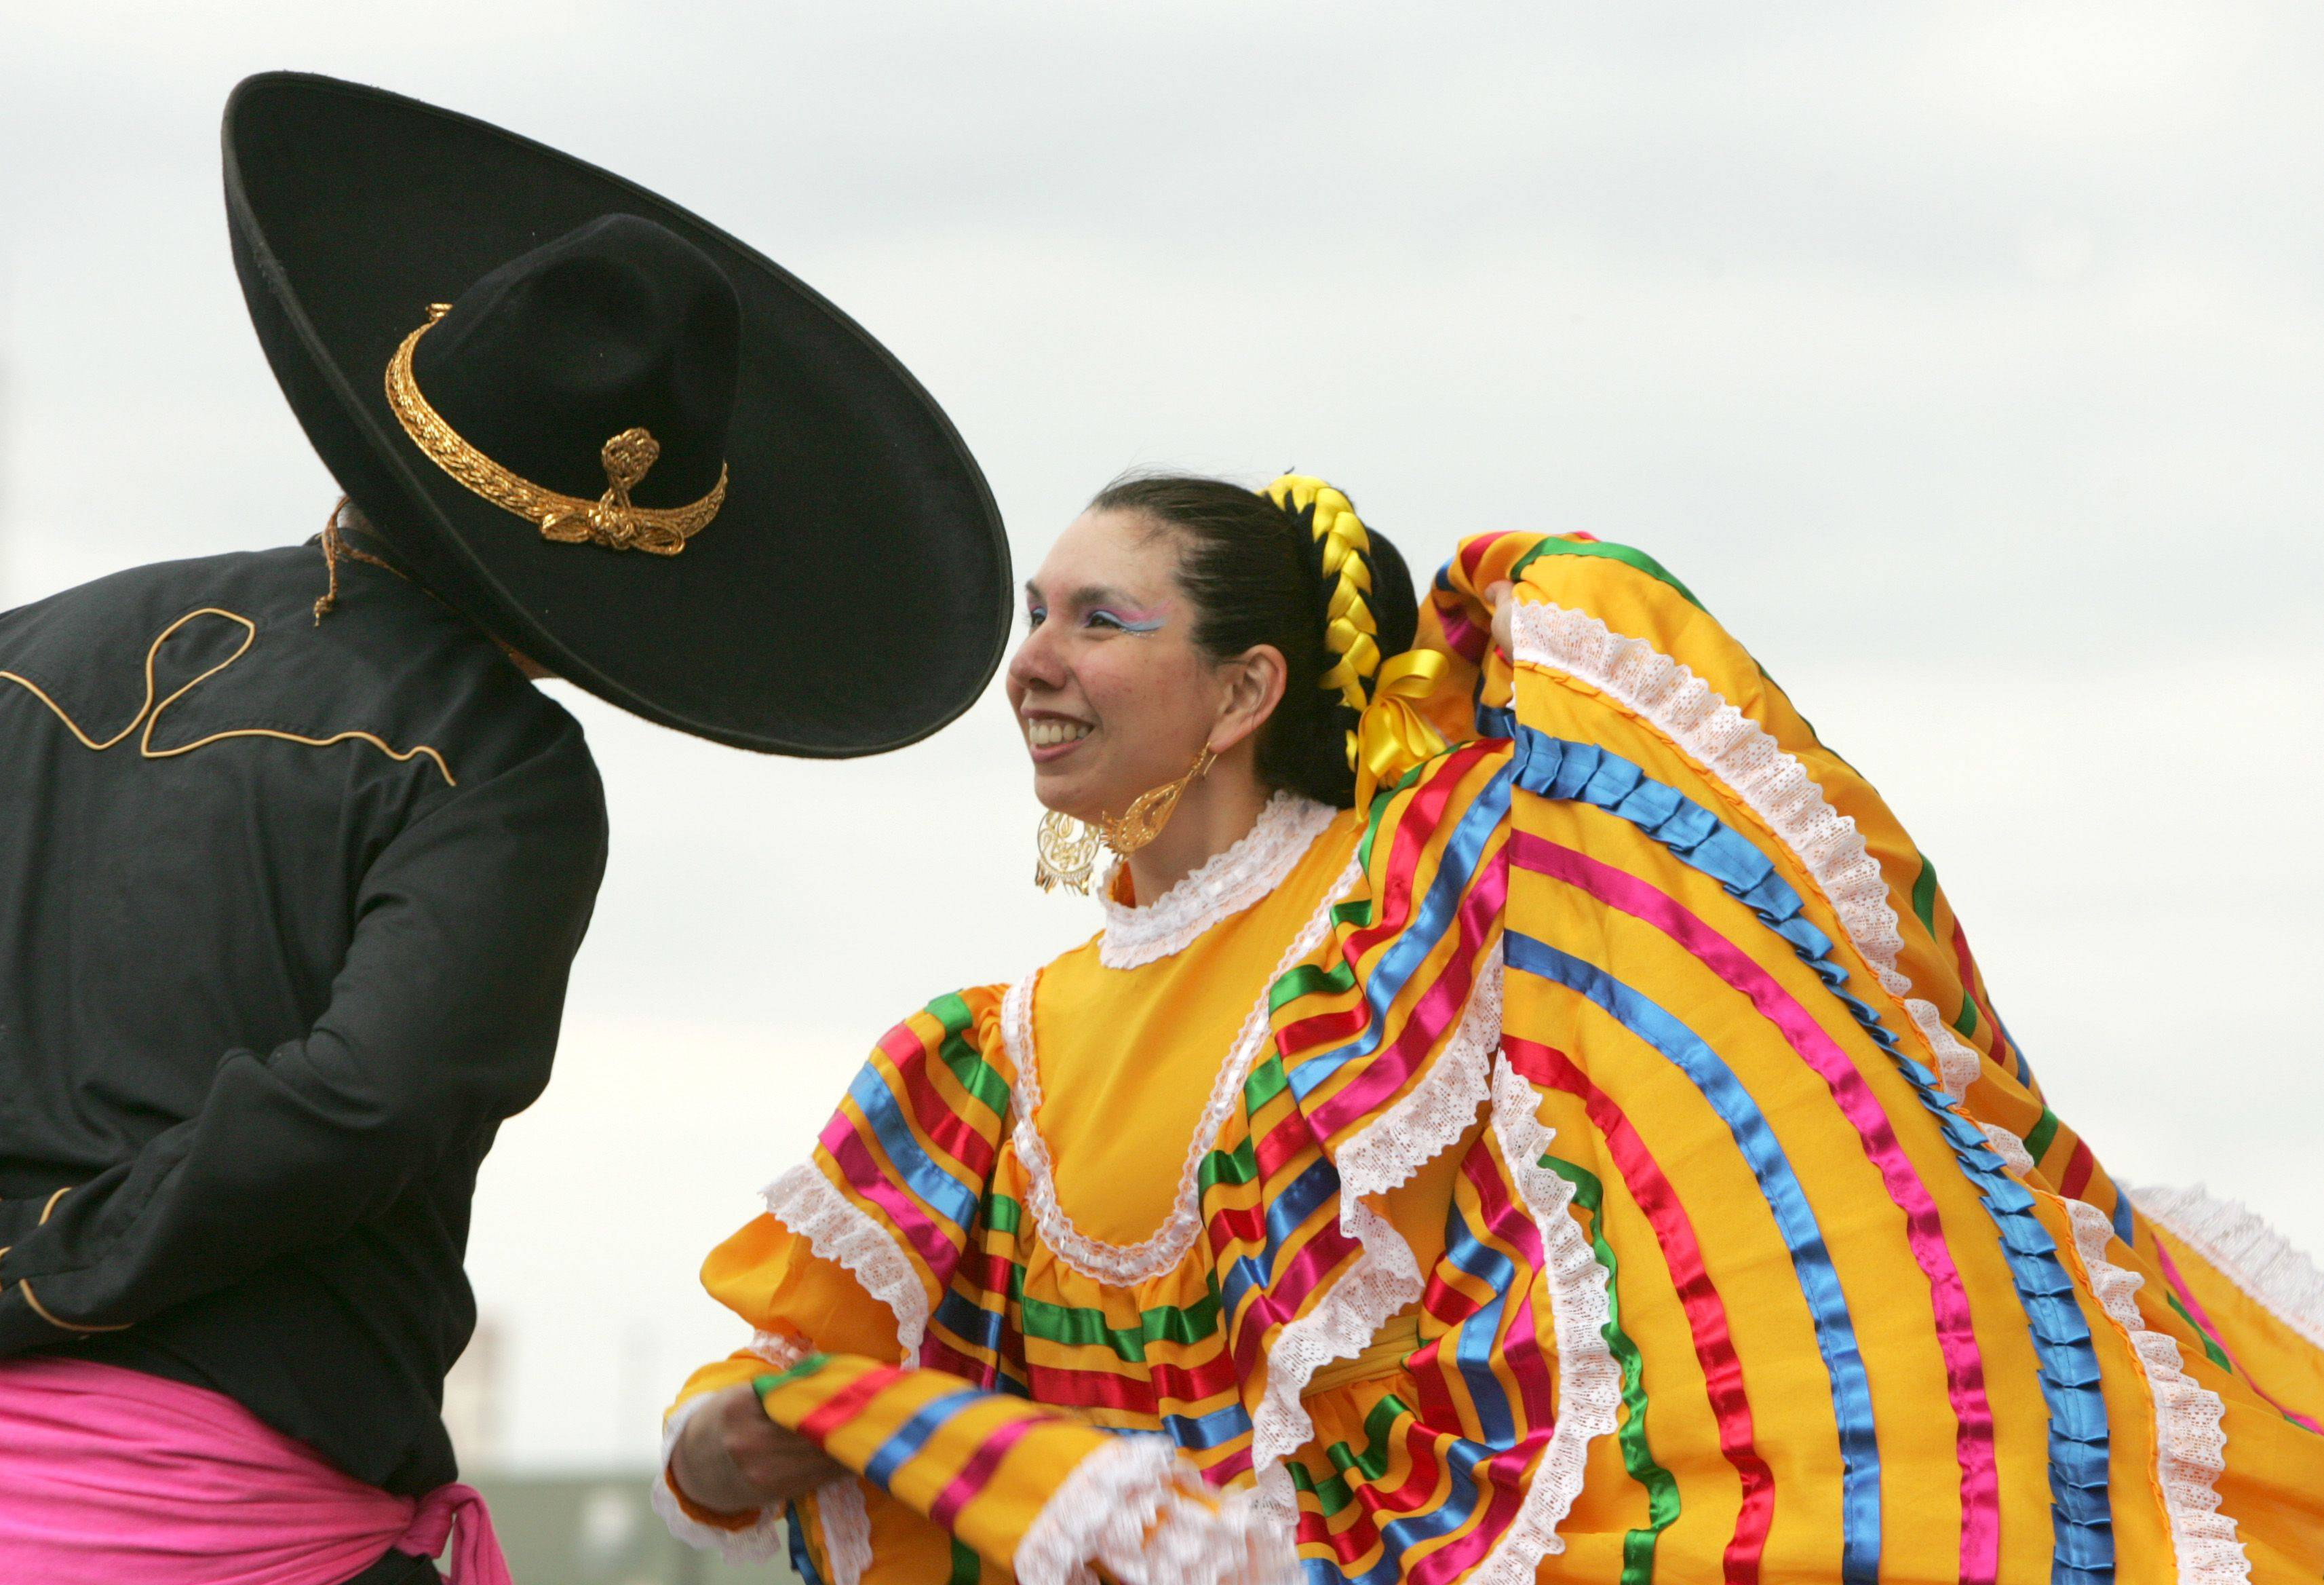 Aracely Gomez of the Ballet Folklorico Quetzalcoatl dances during the Aurora School Districts' El Dia De Los Ninos, or childrens day, held at the Aurora Transportation Center.